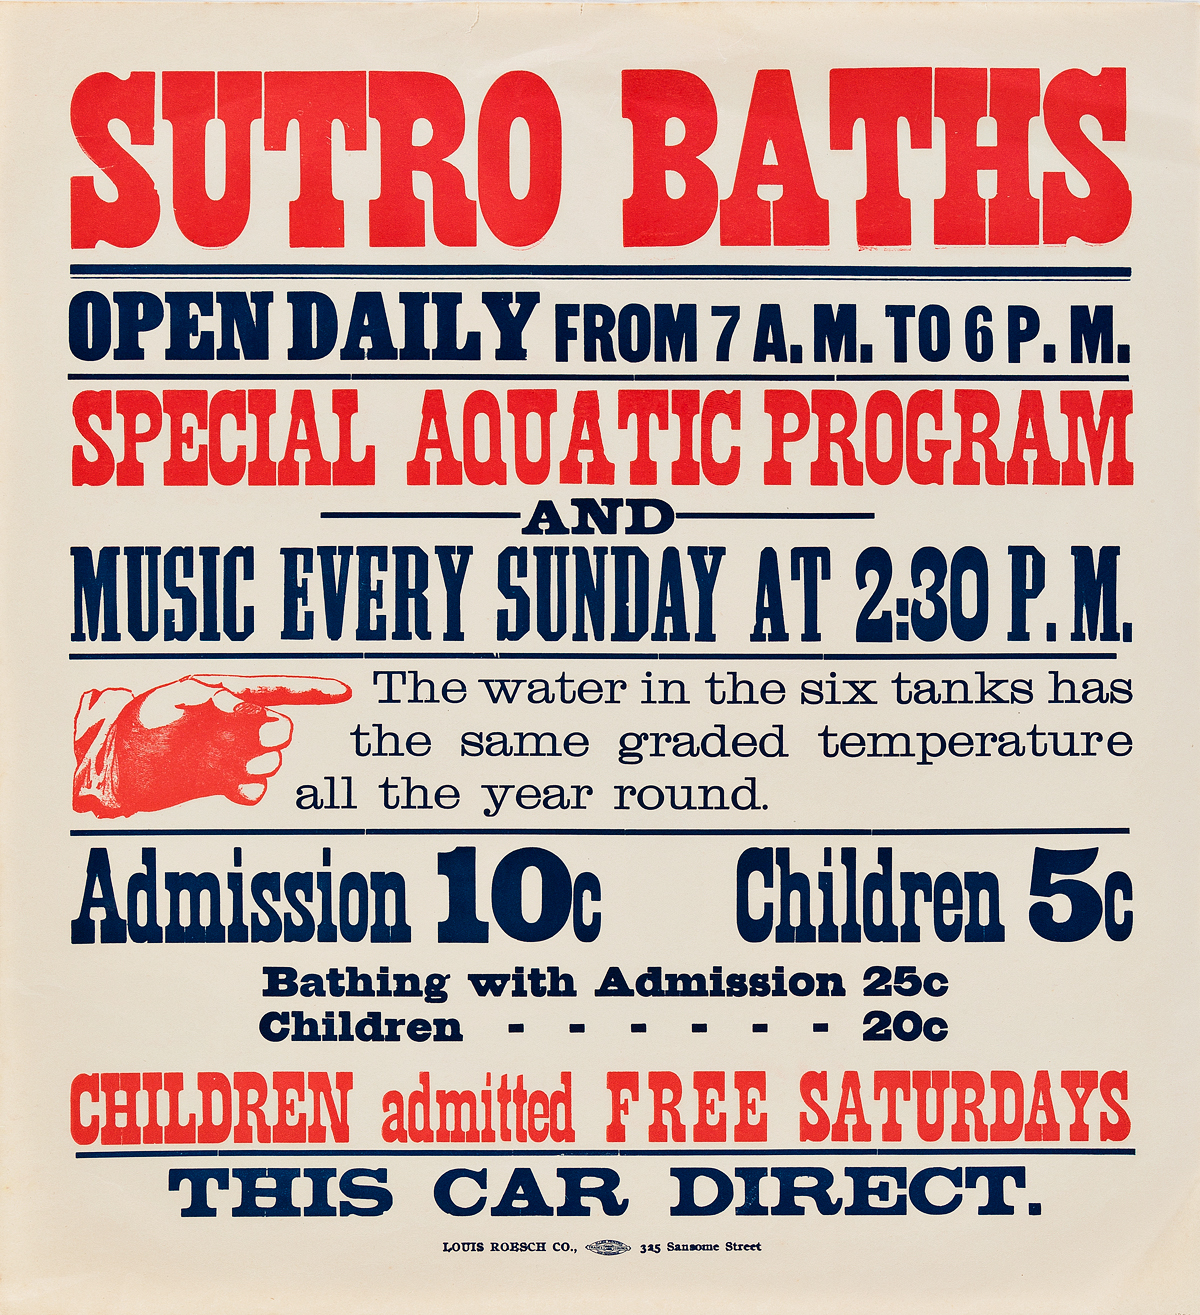 DESIGNERS-UNKNOWN-SUTRO-BATHS-Group-of-7-broadsides-1897-1901-Sizes-vary-each-approximately-16x16-inches-40x40-cm-Louis-Roesch-C